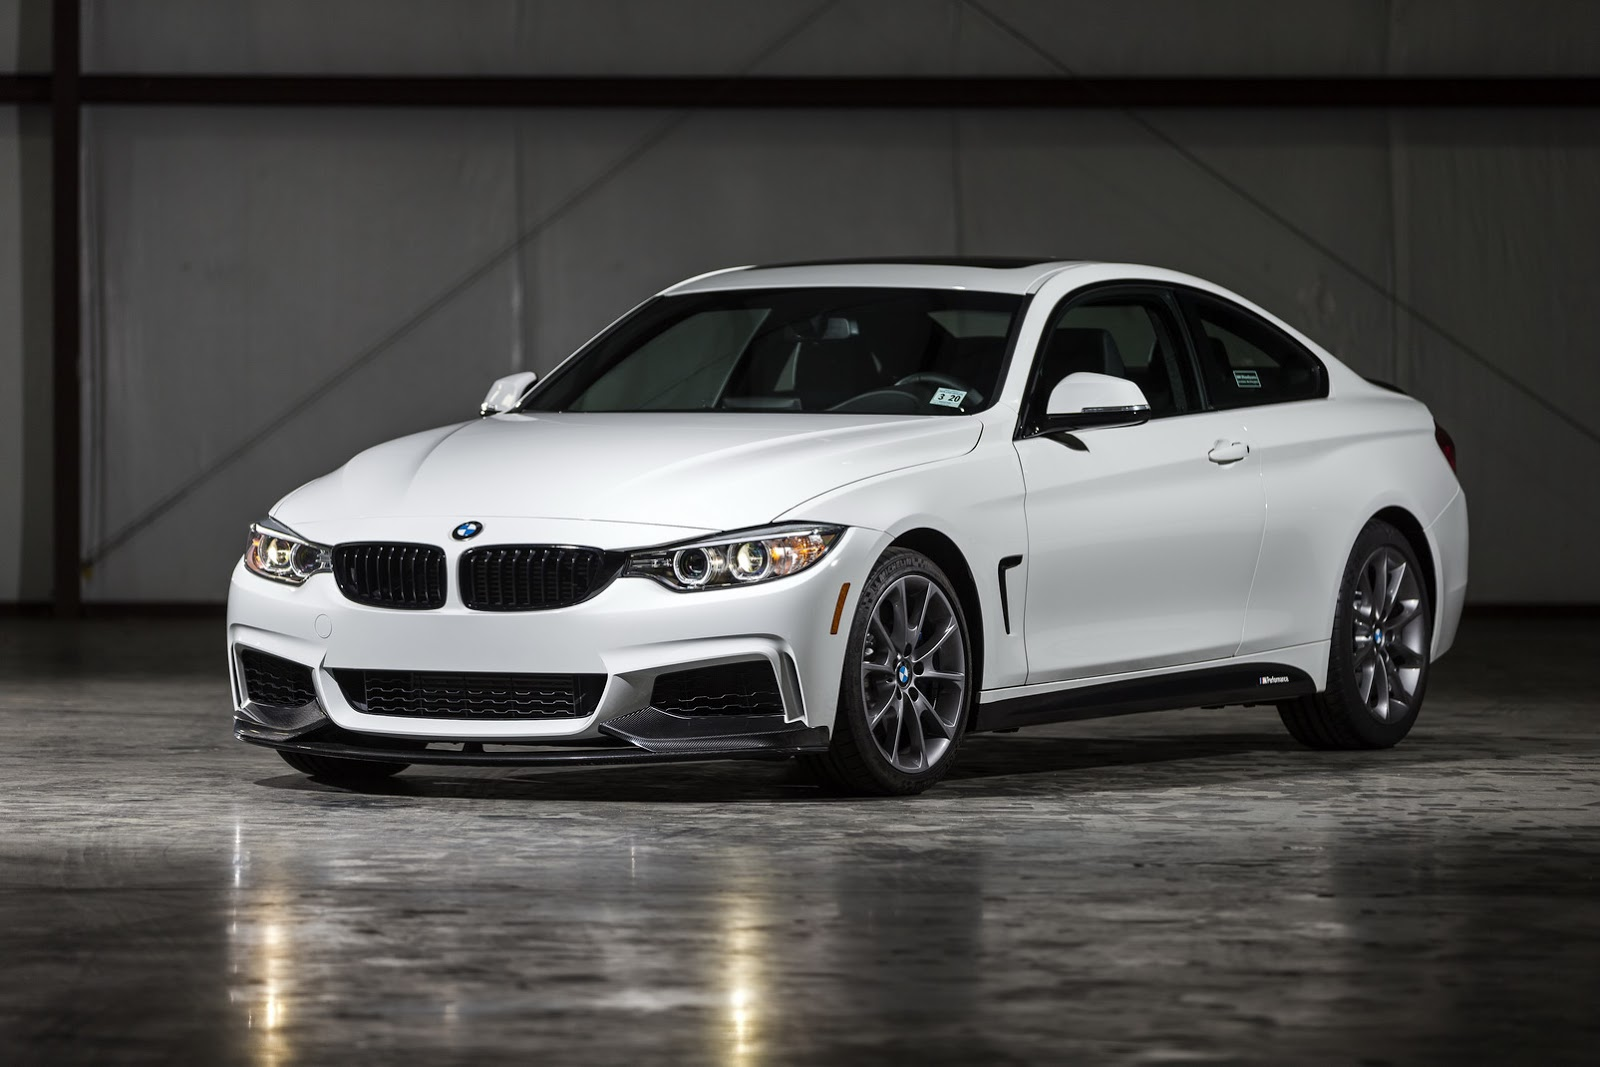 new bmw 435i zhp coupe with 335hp and lsd limited to 100 units carscoops. Black Bedroom Furniture Sets. Home Design Ideas